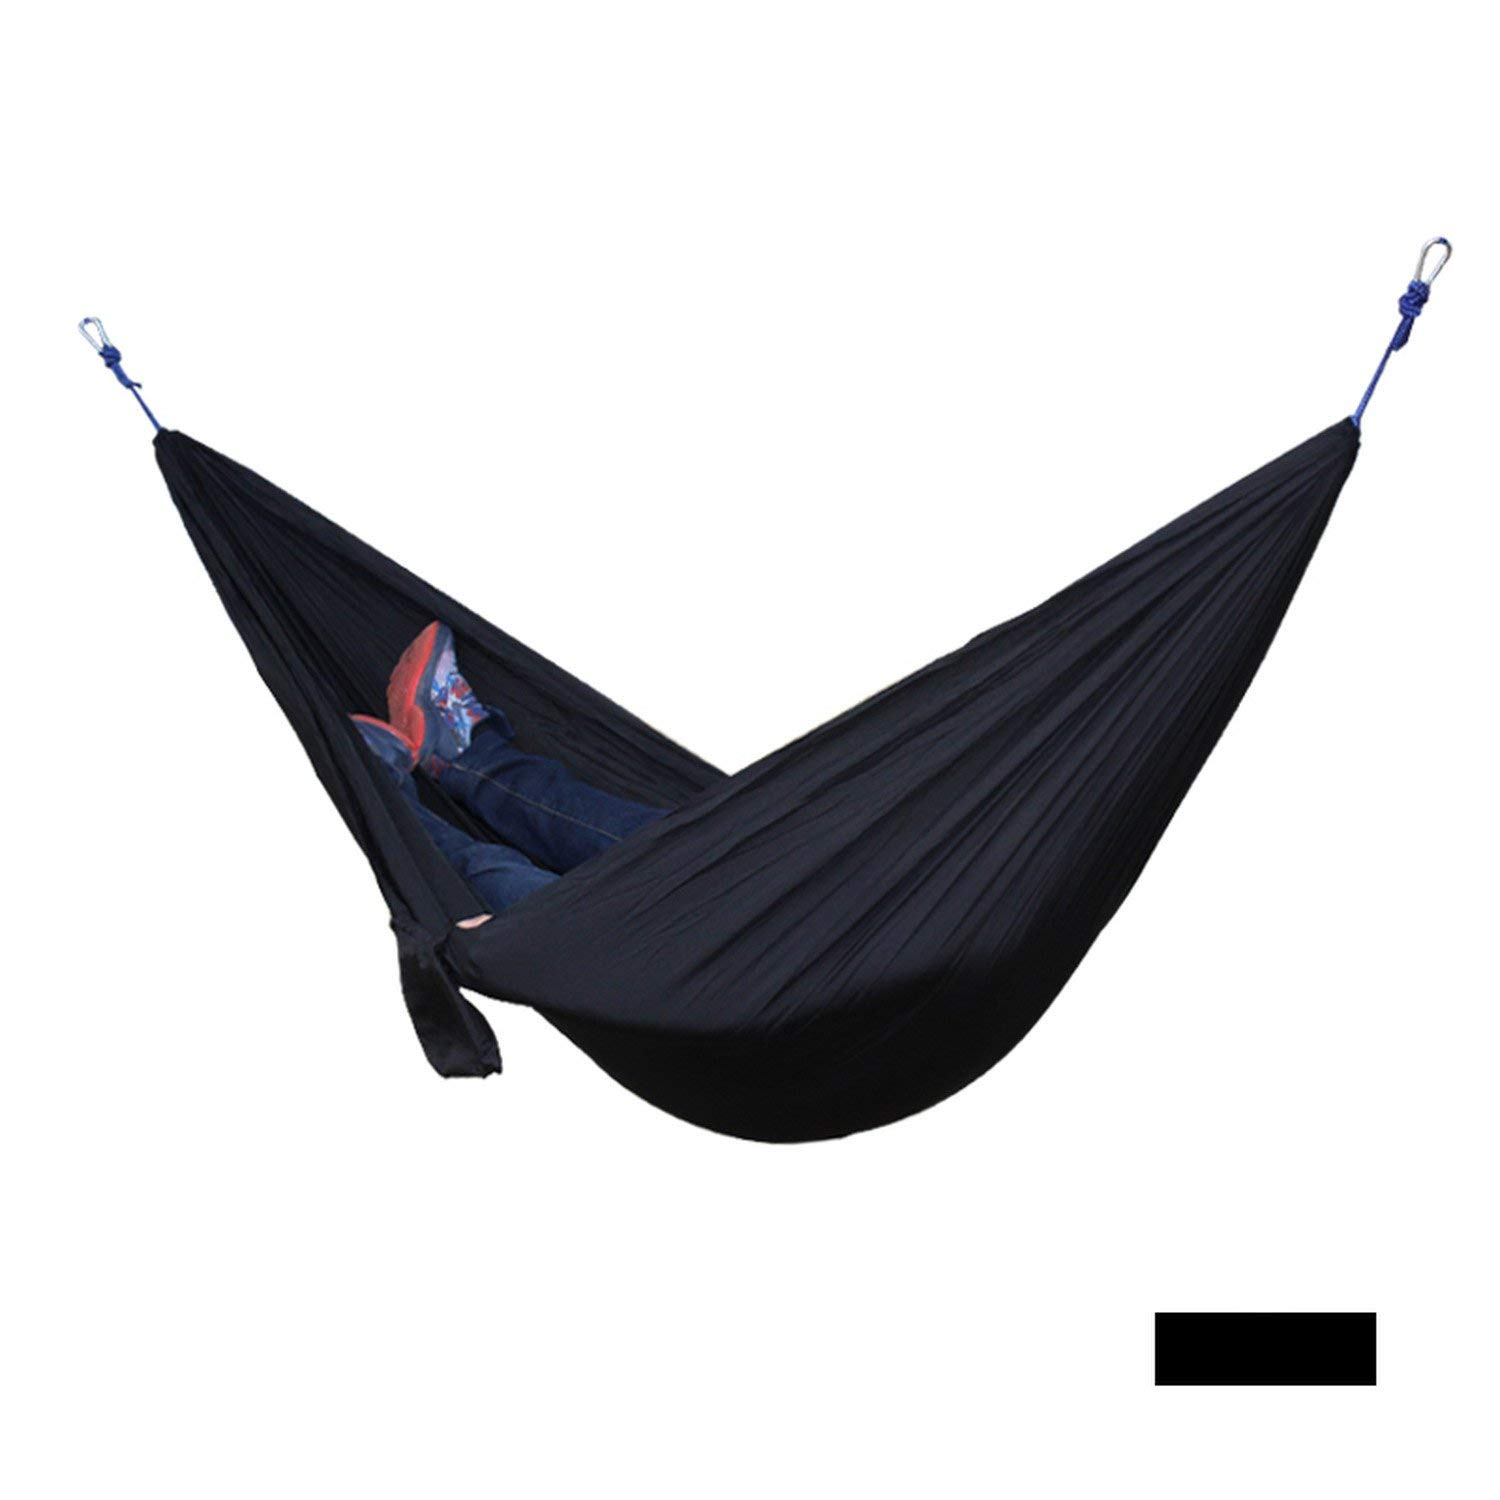 Mandaartins 24 Color 2 People Portable Parachute Hammock Camping Survival Garden Flyknit Hunting Leisure Hamac Travel Double Person Hamak,black